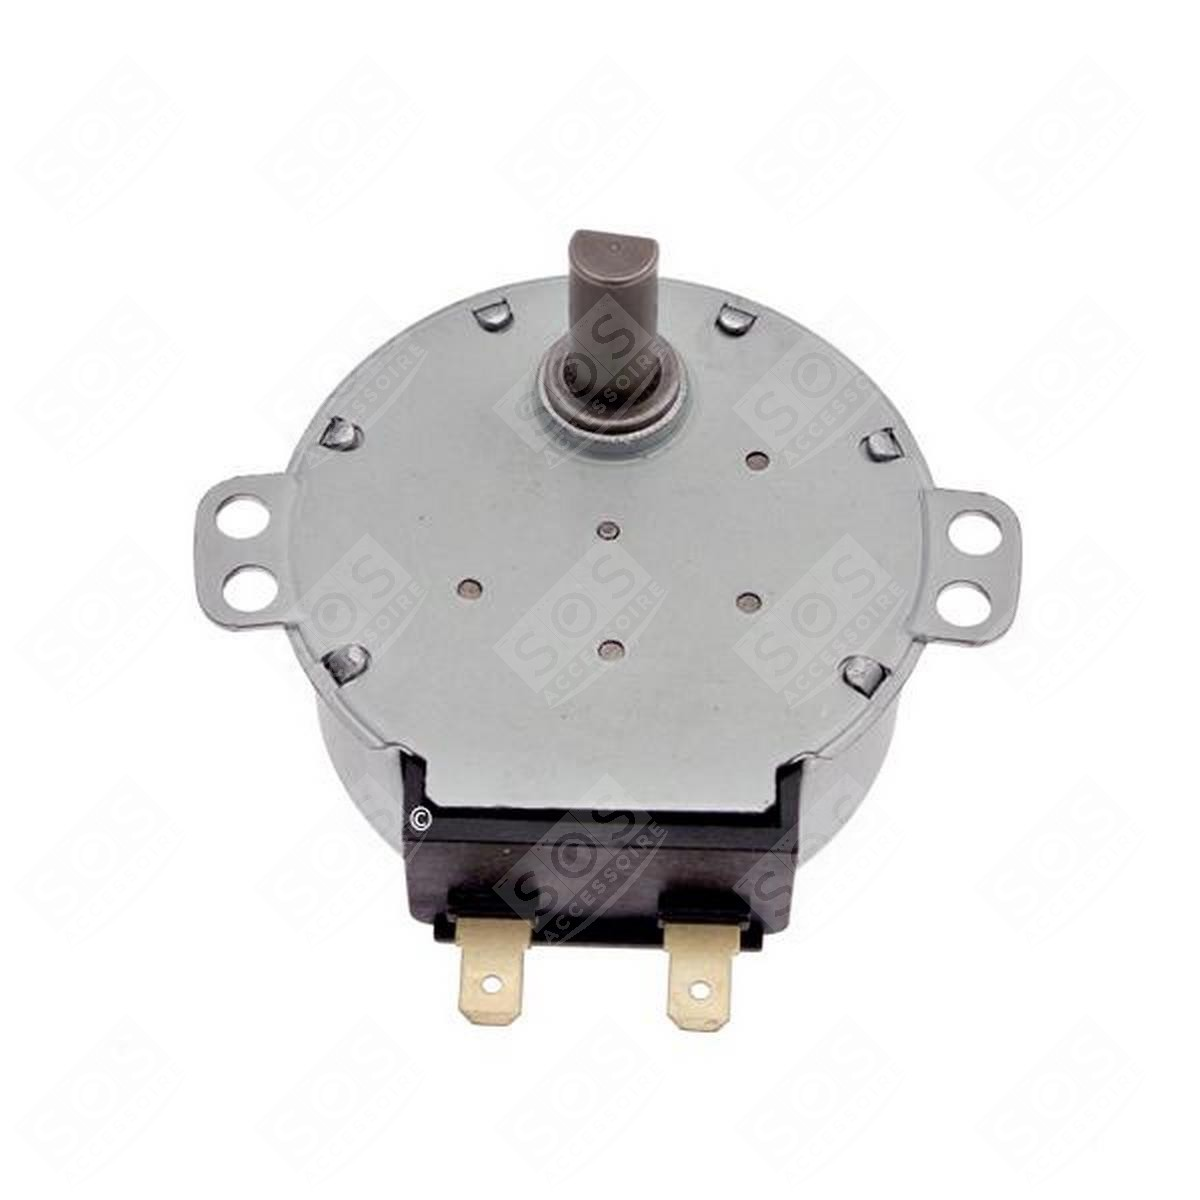 Turntable Motor Lg 6549w1s018a